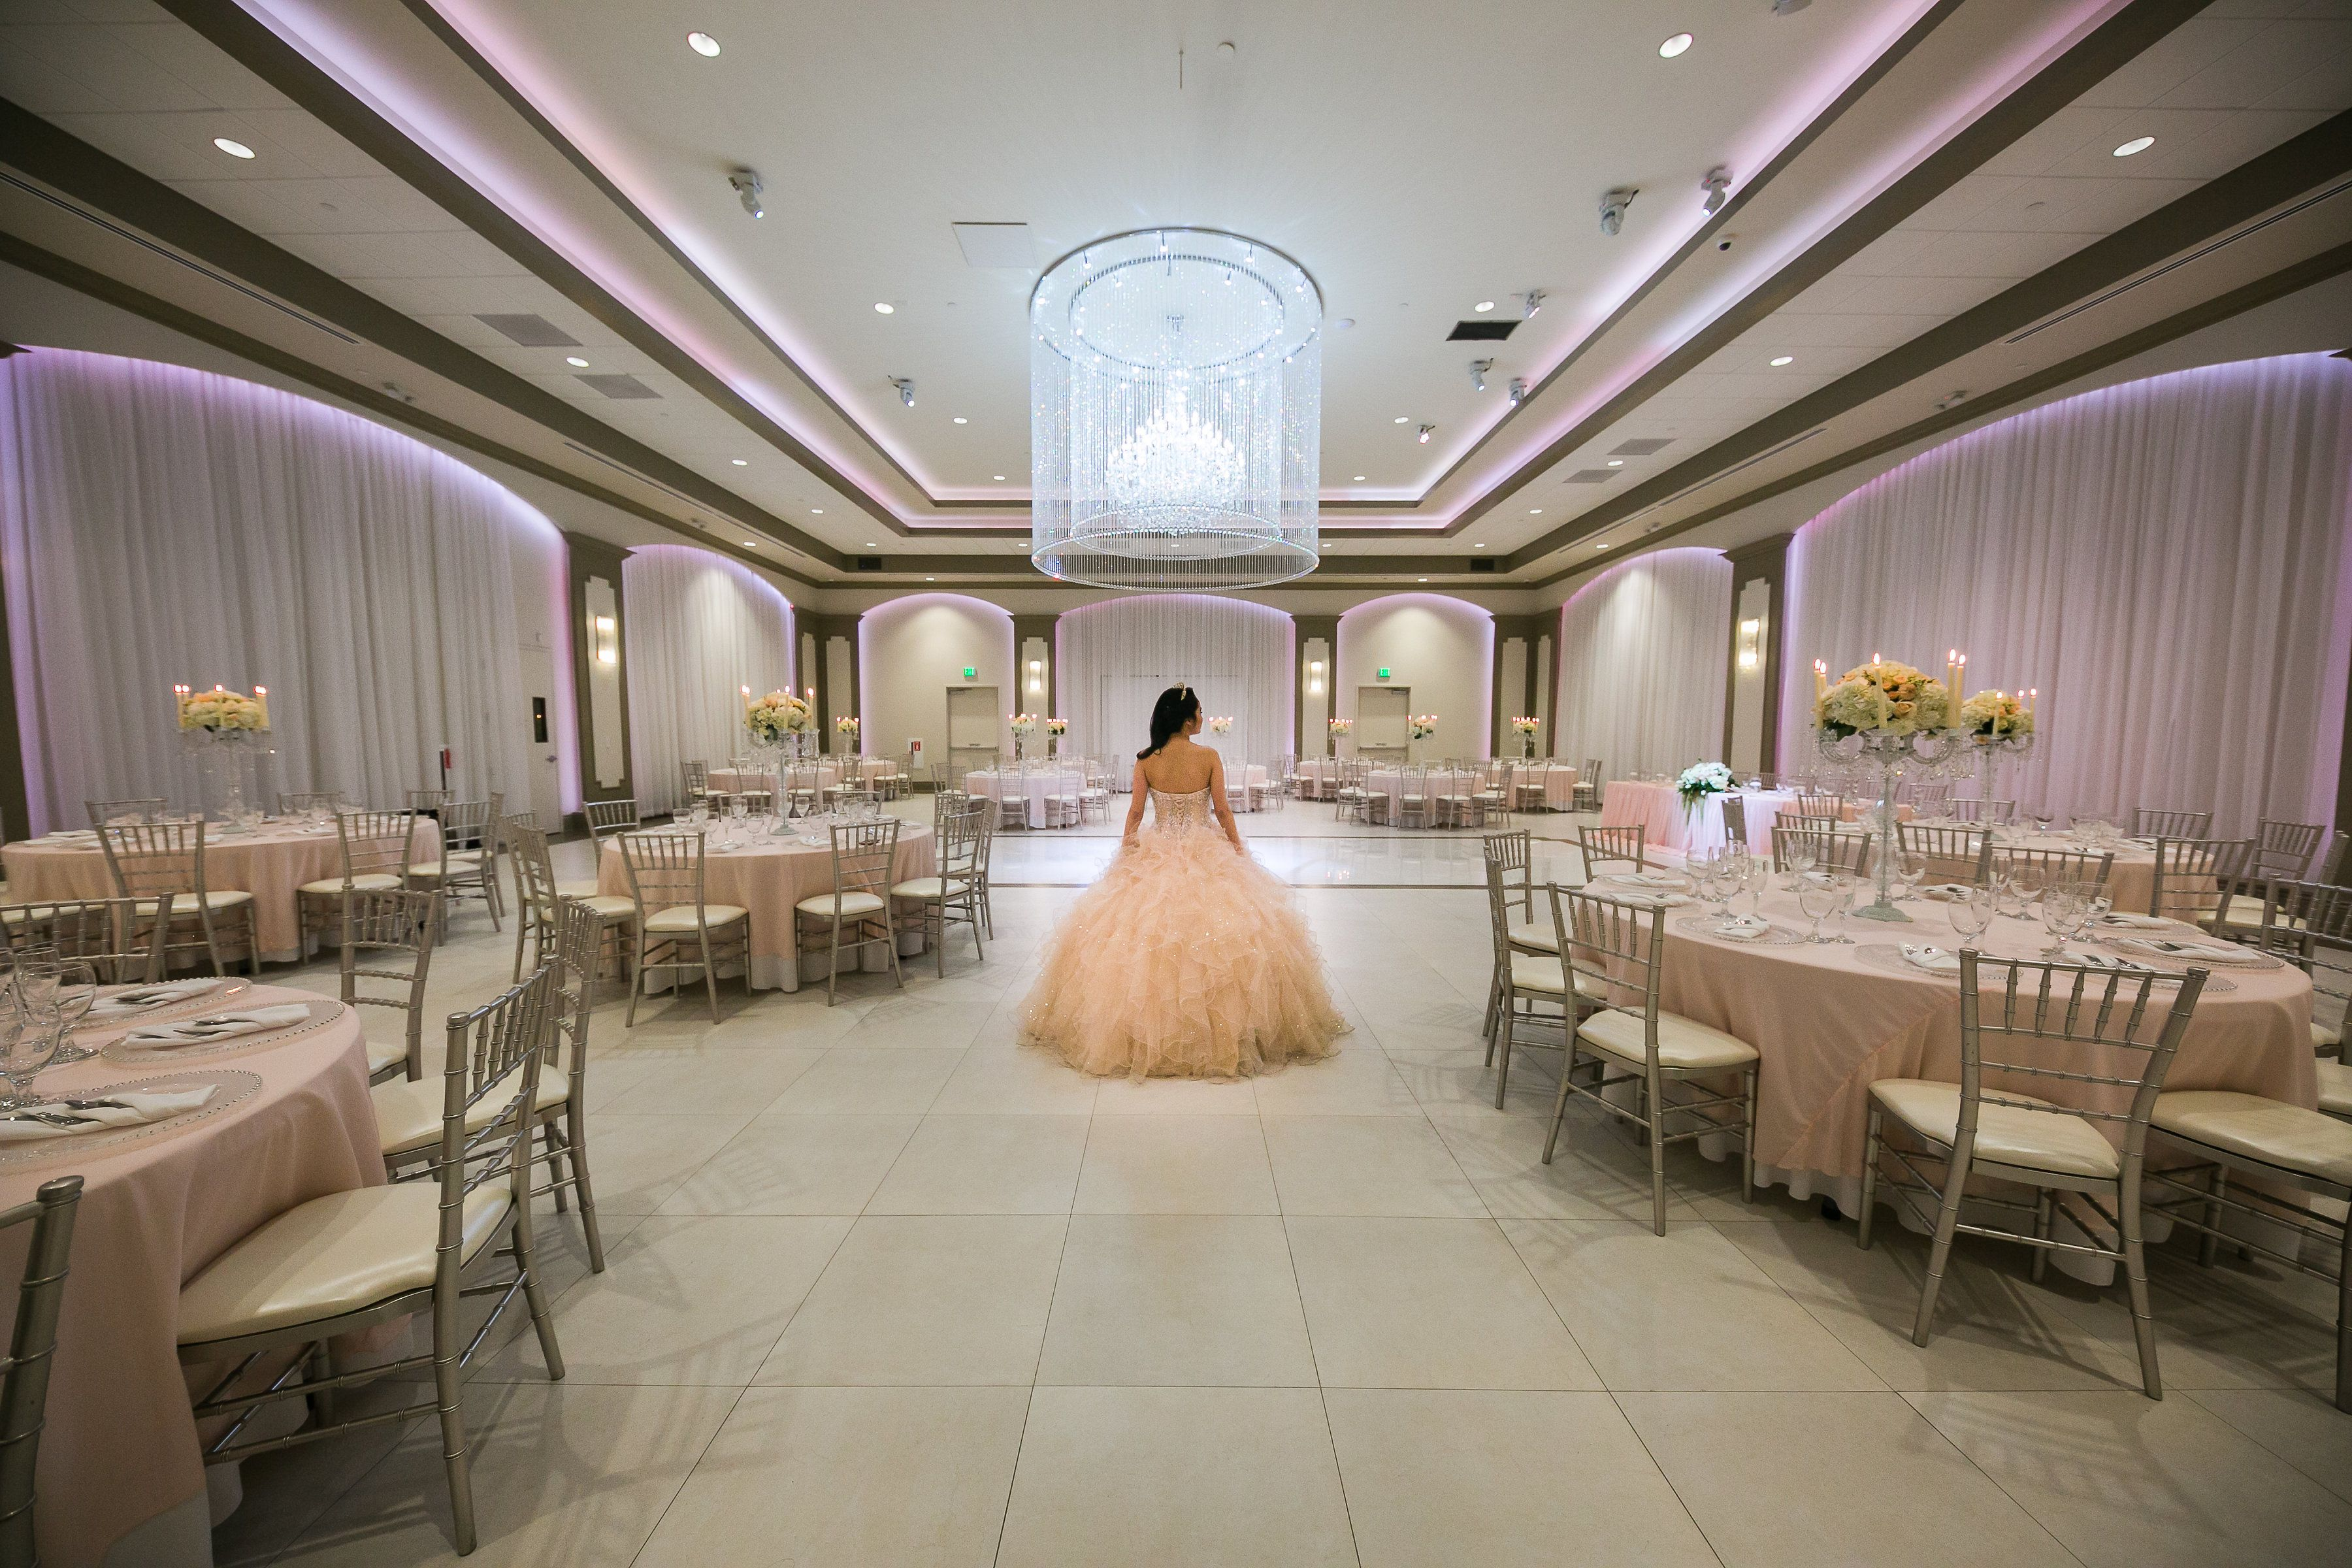 Gorgeous Reception Venue In The Heart Of The Inland Empire Venues That Can Fit Up To 600 People Wedding Inspiration Sweet 16 Venues Wedding Reception Venues